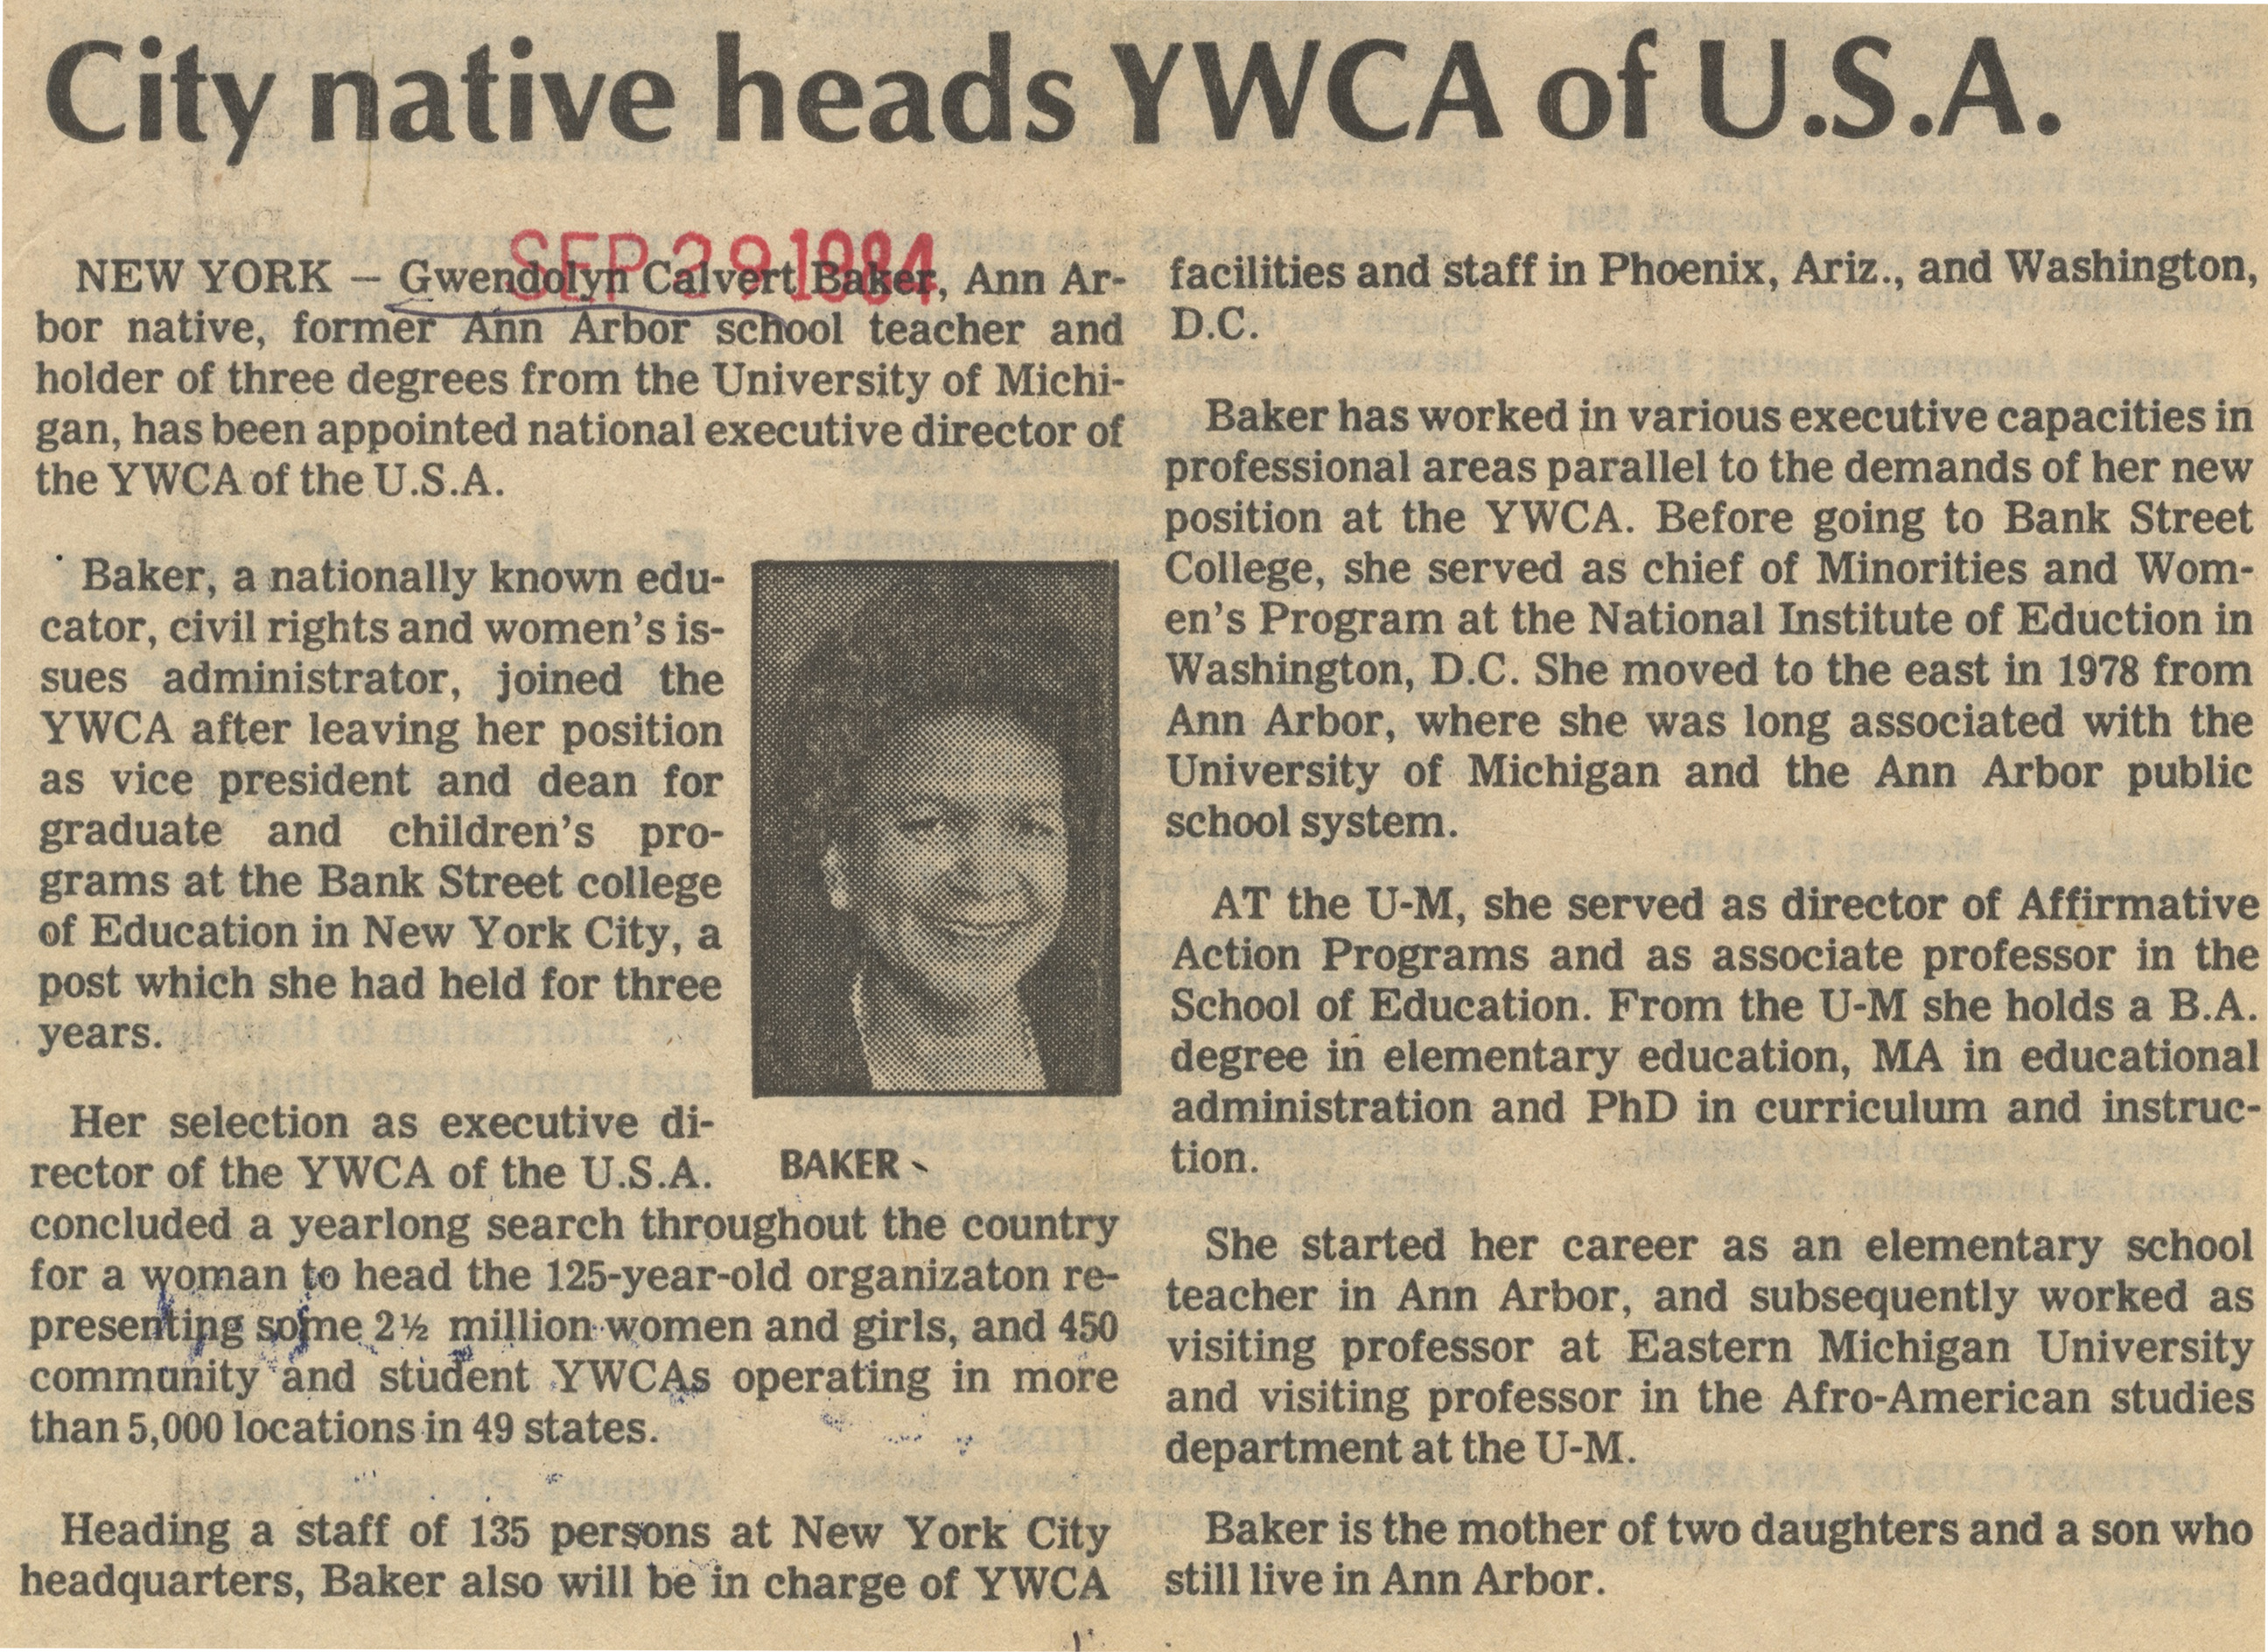 City Native Heads YWCA Of USA image